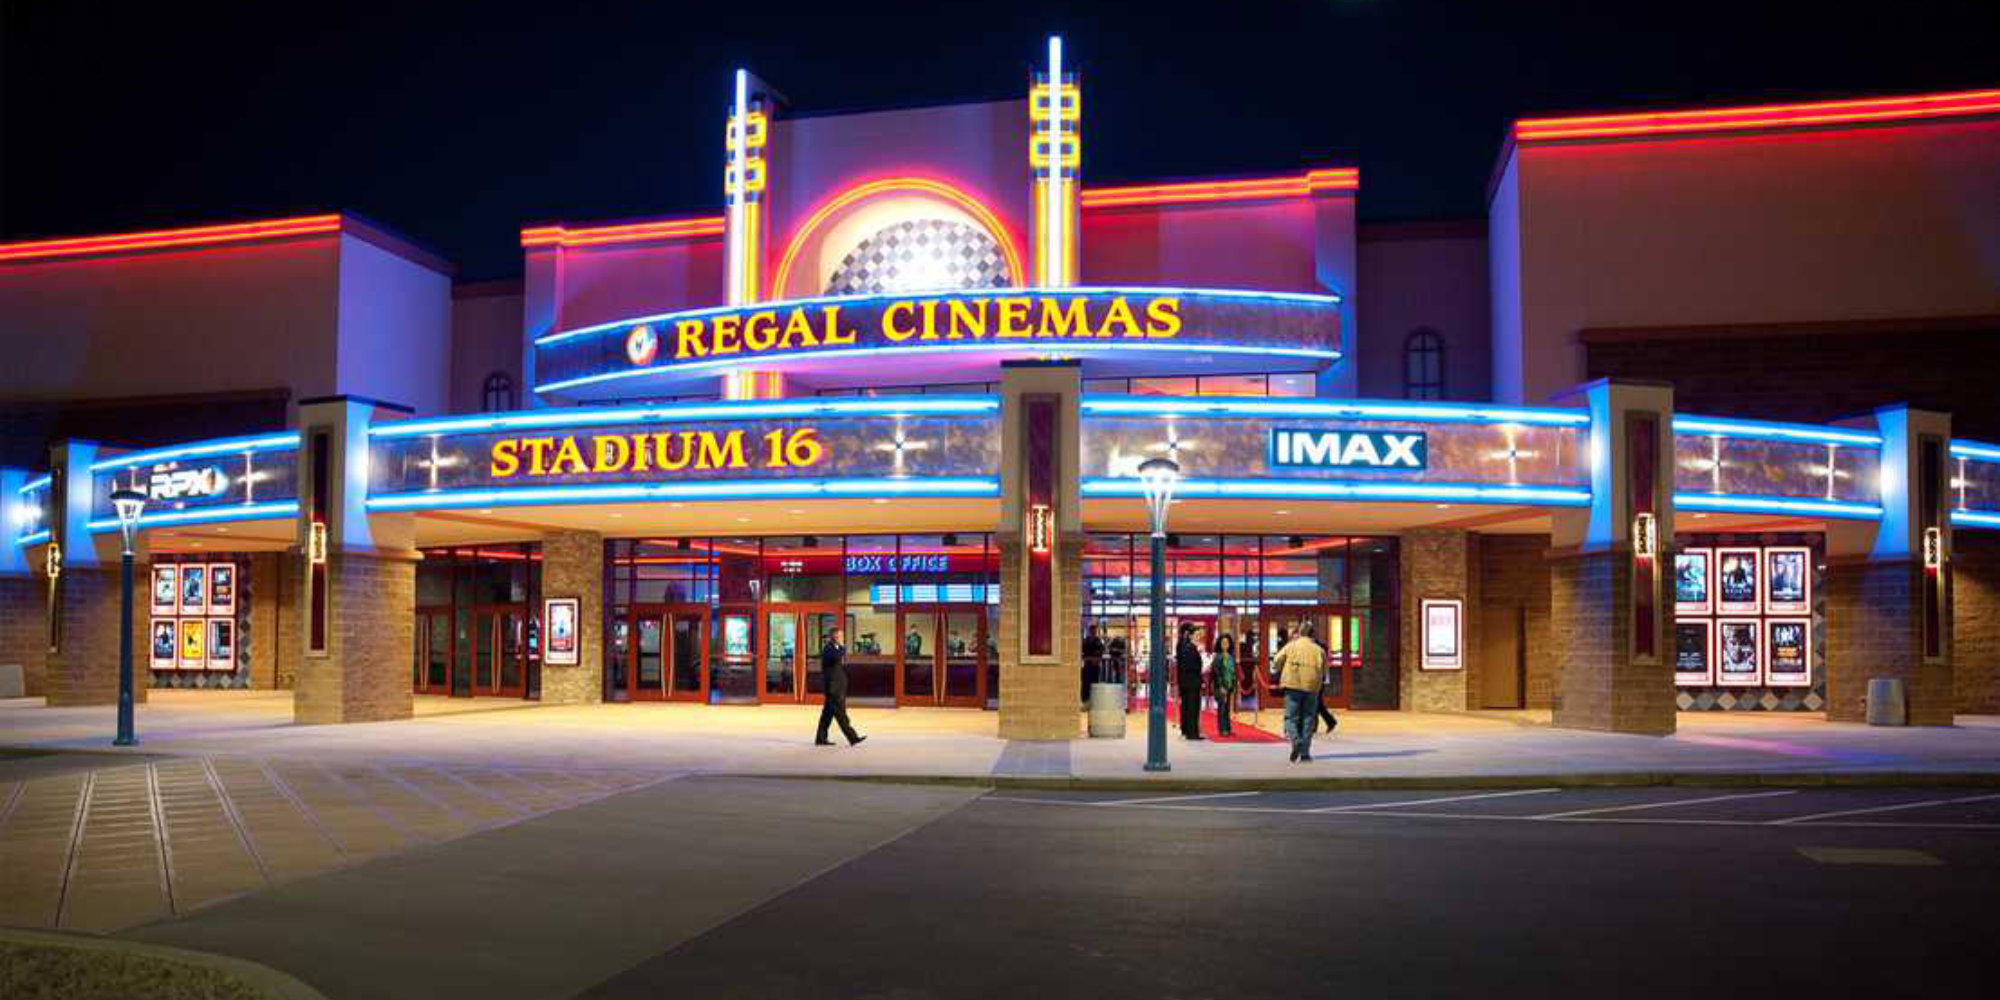 Regal Cinemas subscription